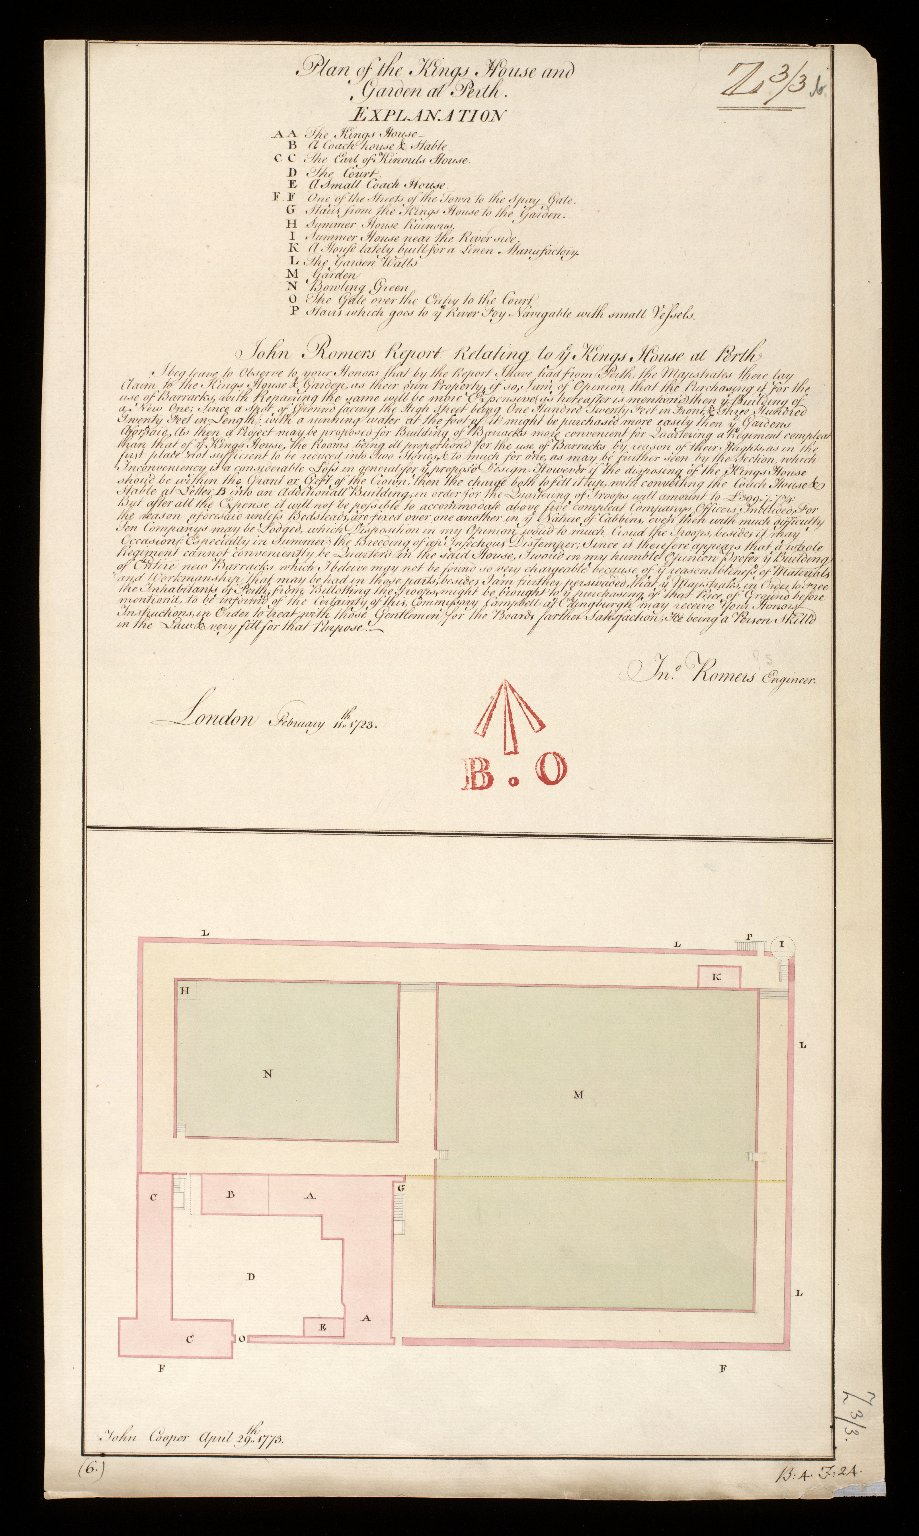 Plan and Section of the Kings House and Garden at Perth [1723] [copy] [1 of 1]